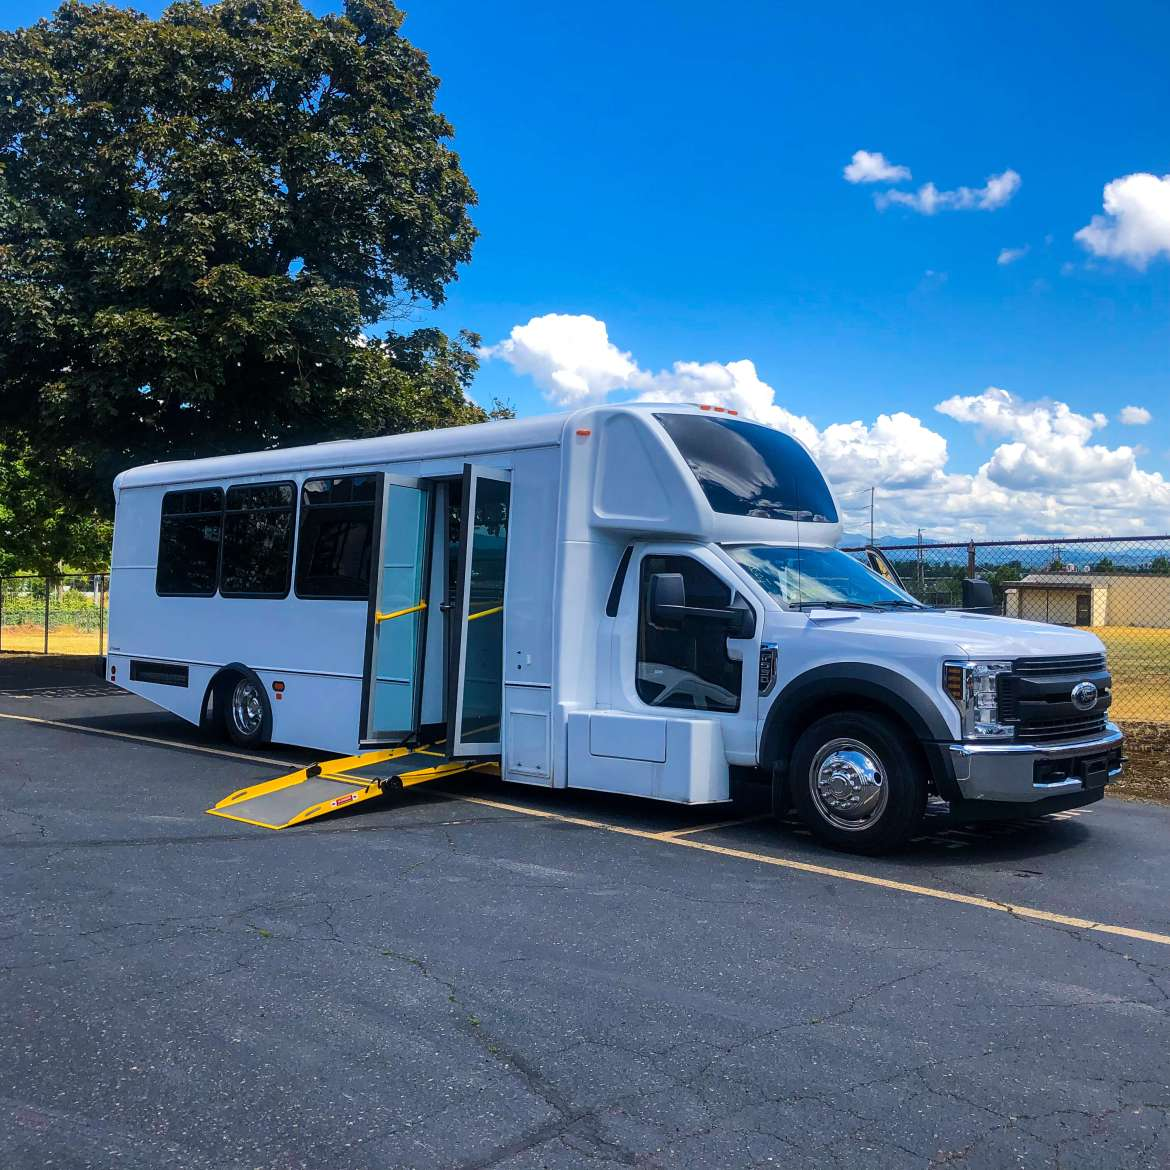 a beautifully designed Champion low floor bus can lower for safe and secure wheelchair access